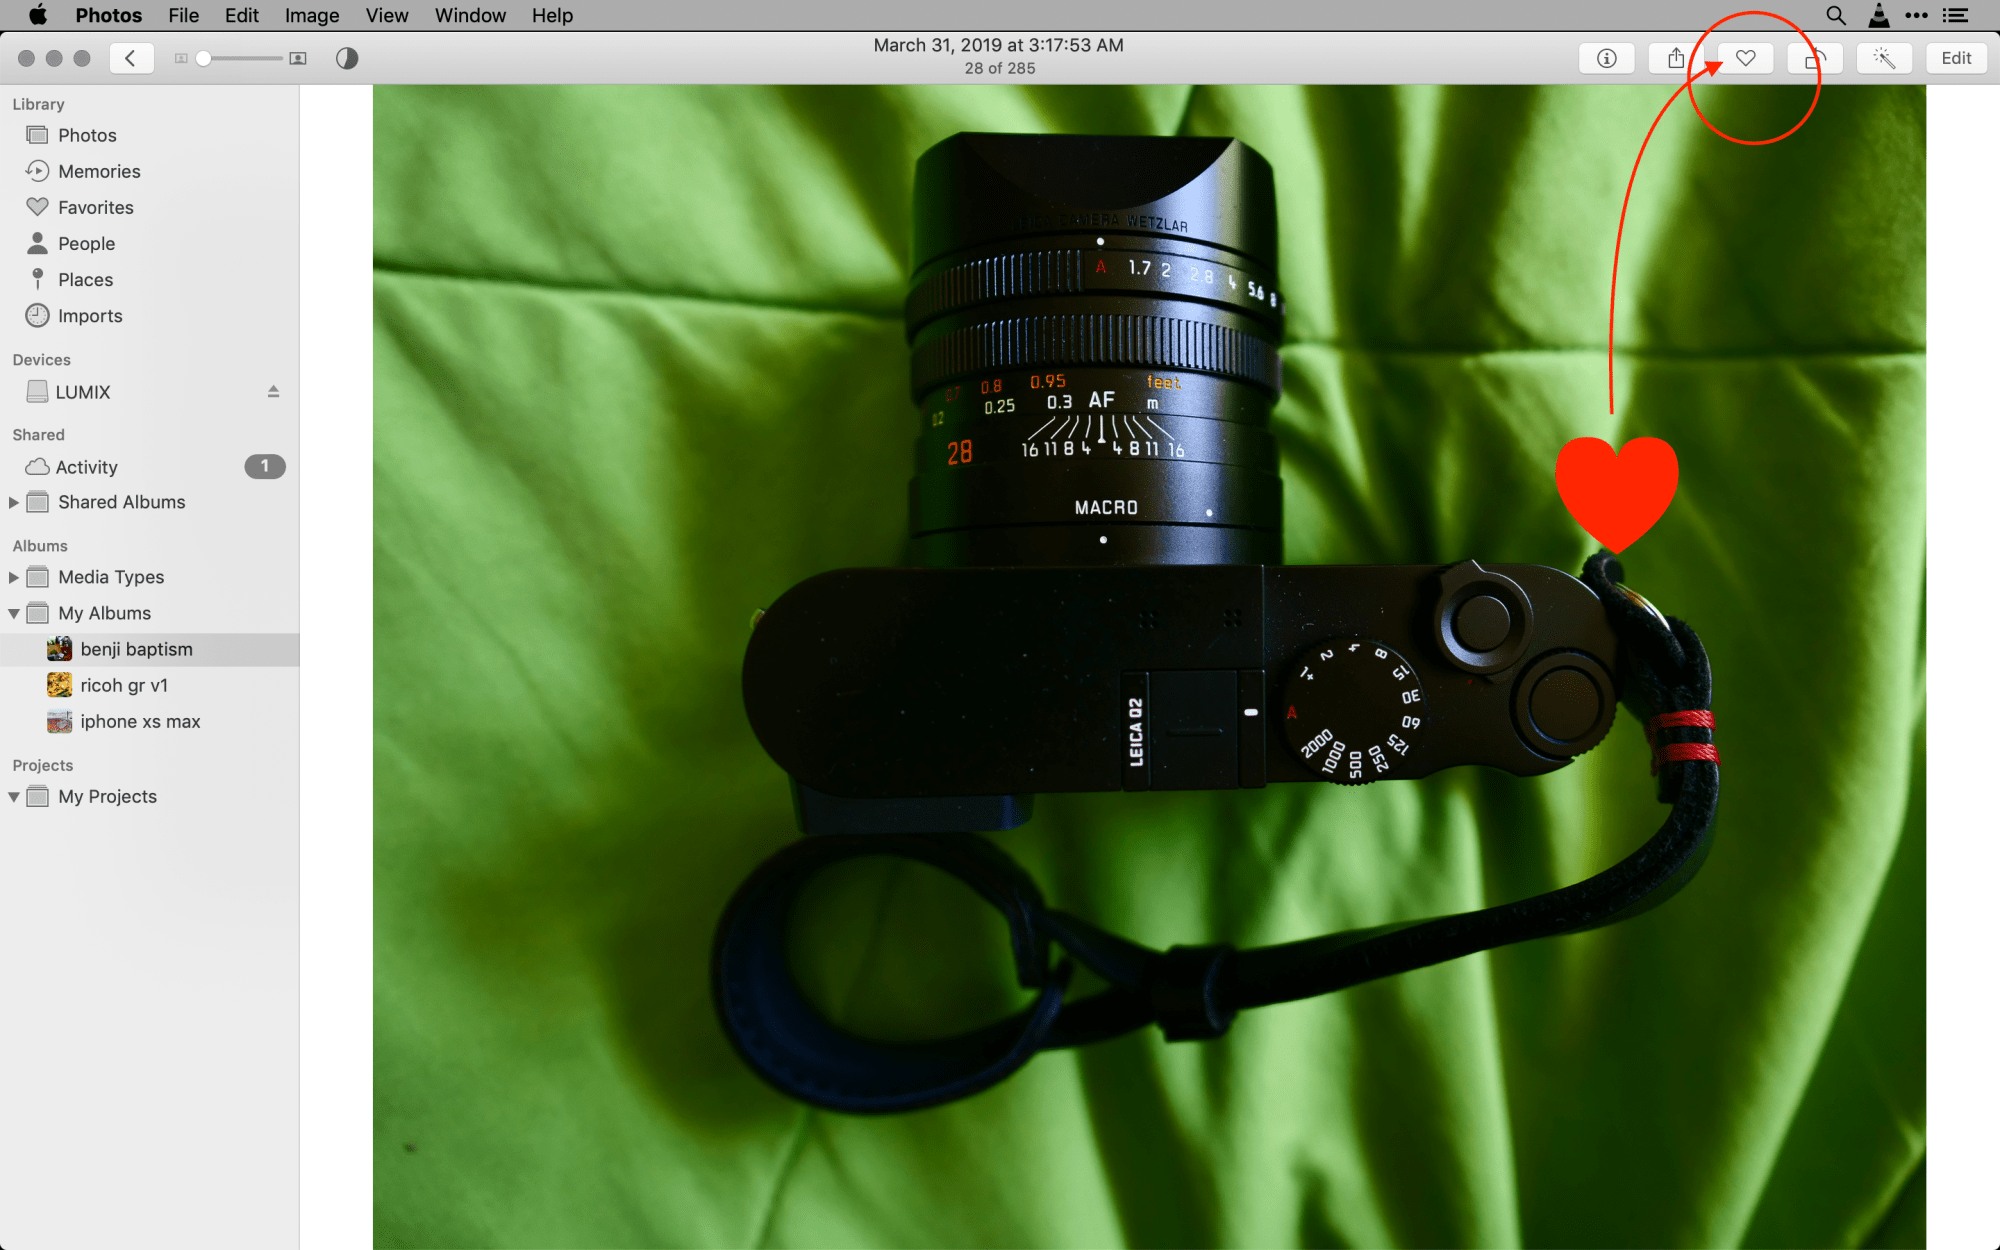 How to flag (favorite) photos in Photos